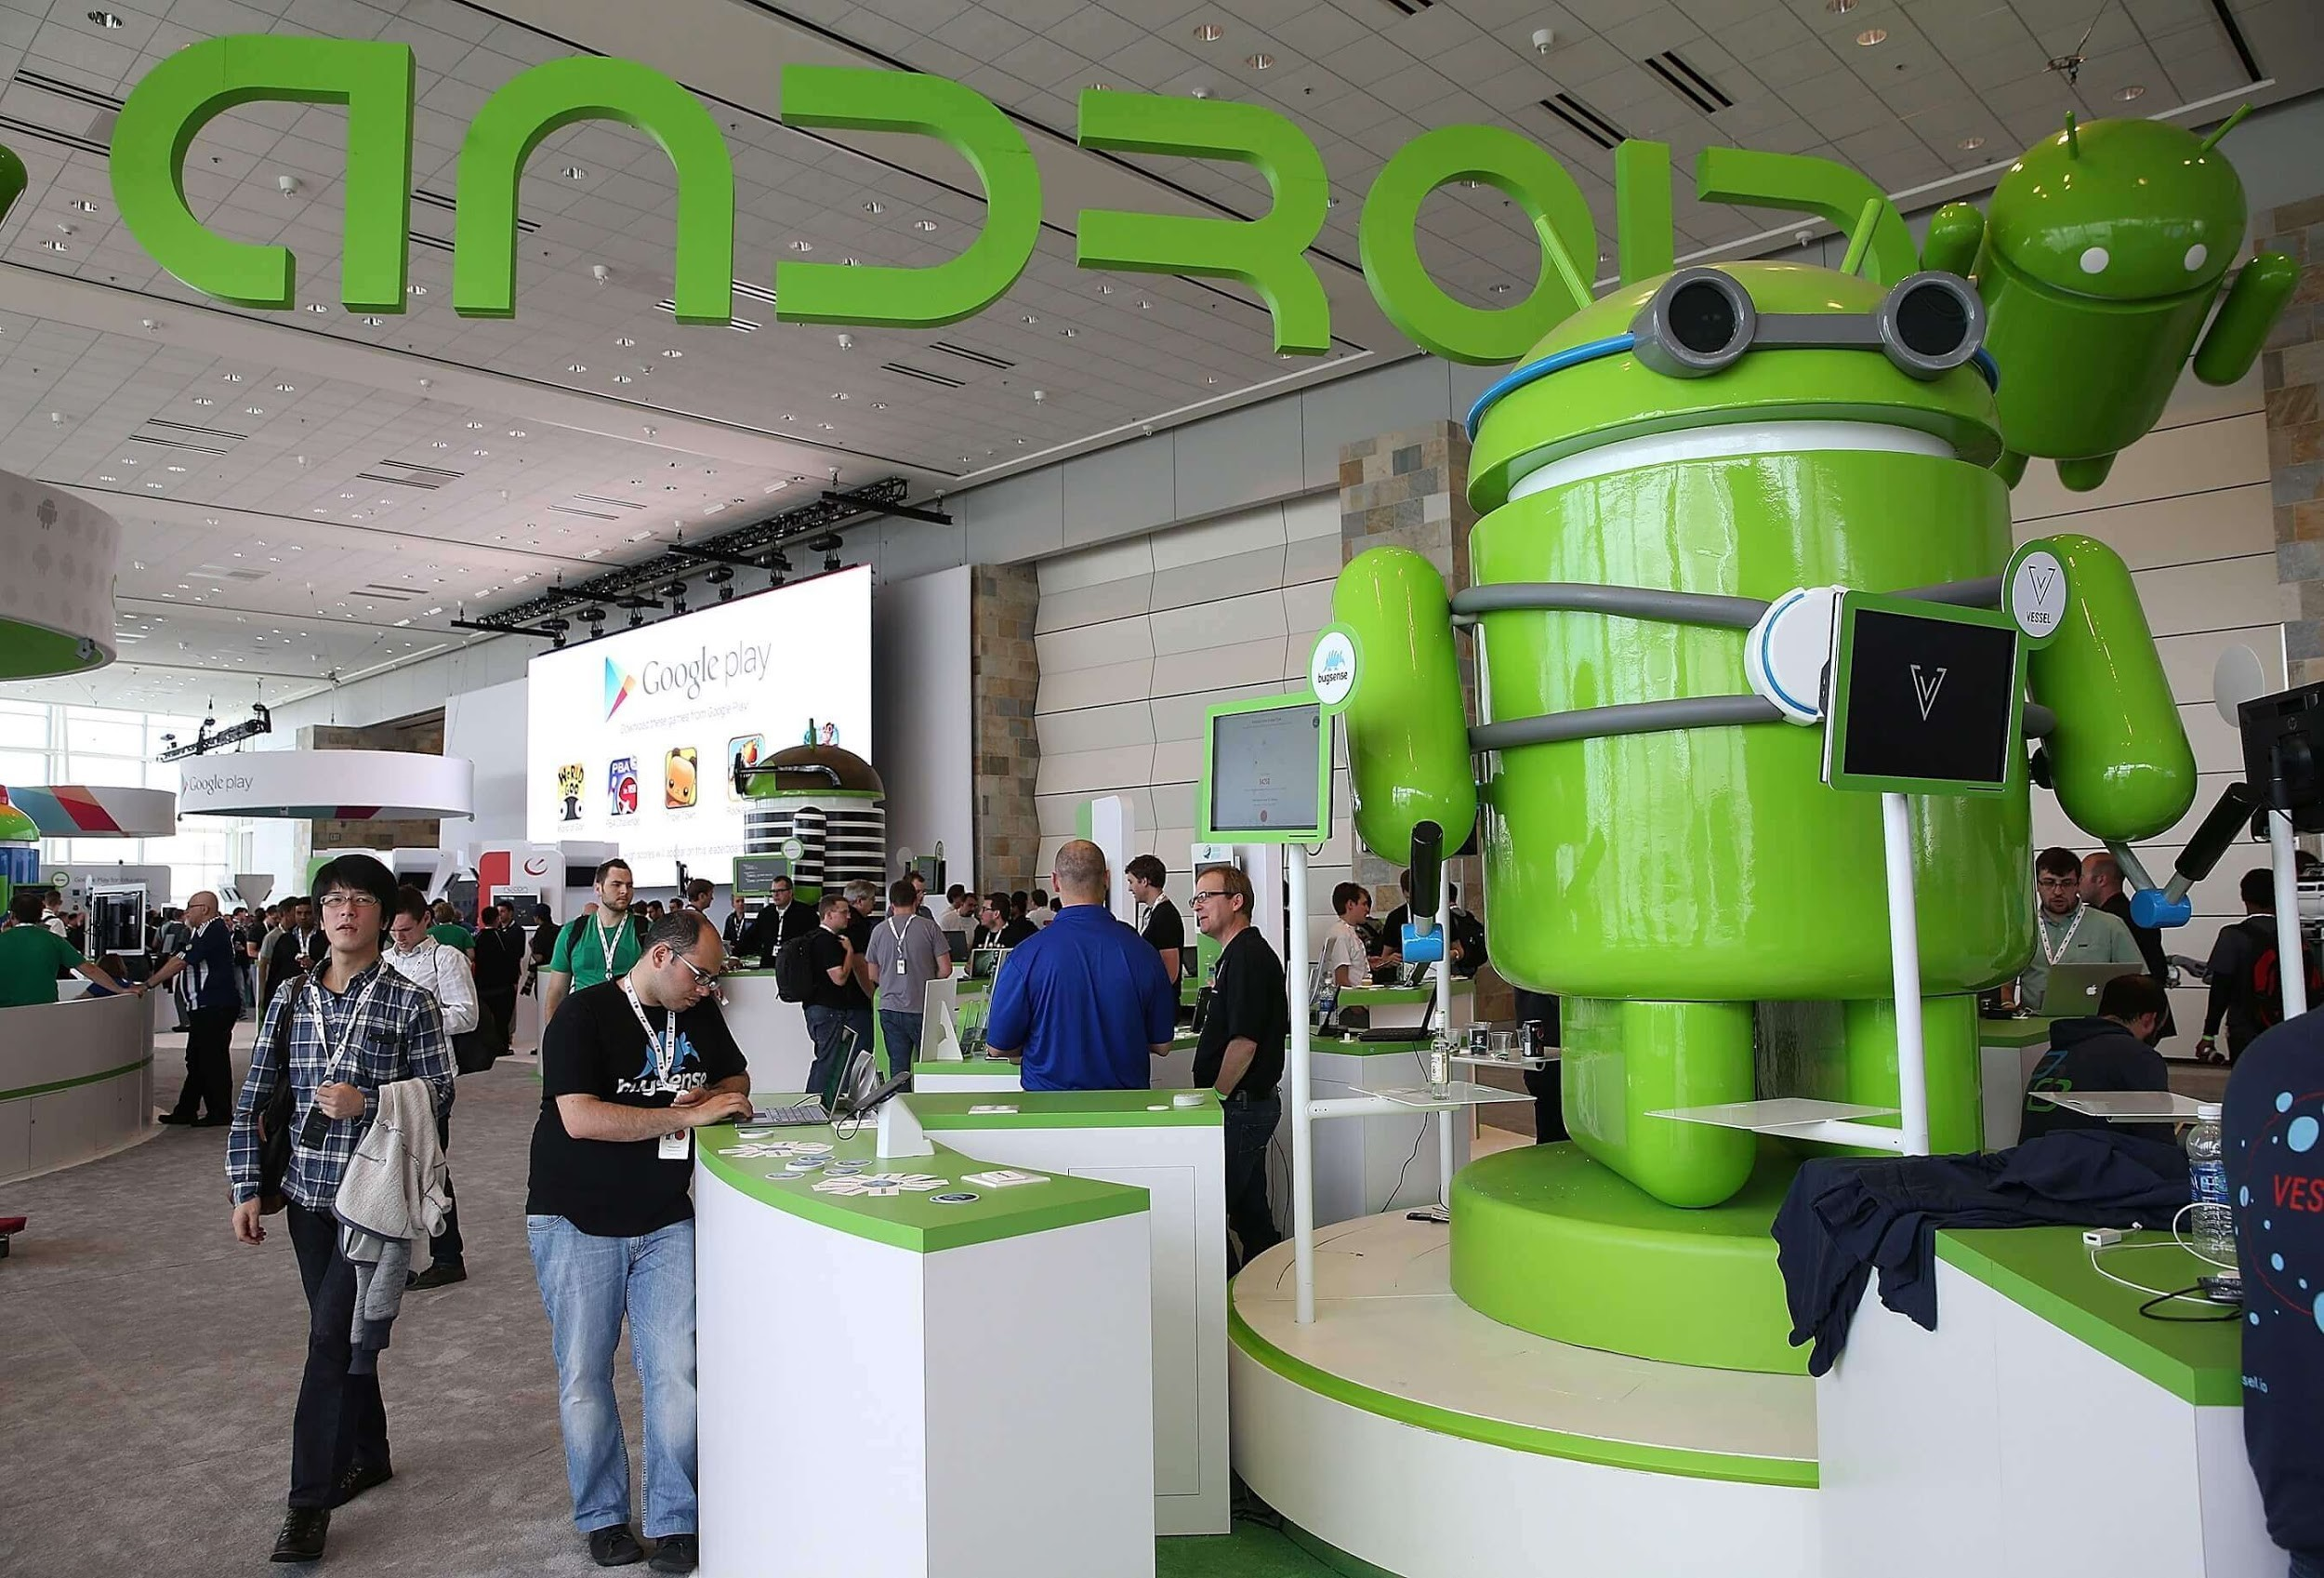 Android Device